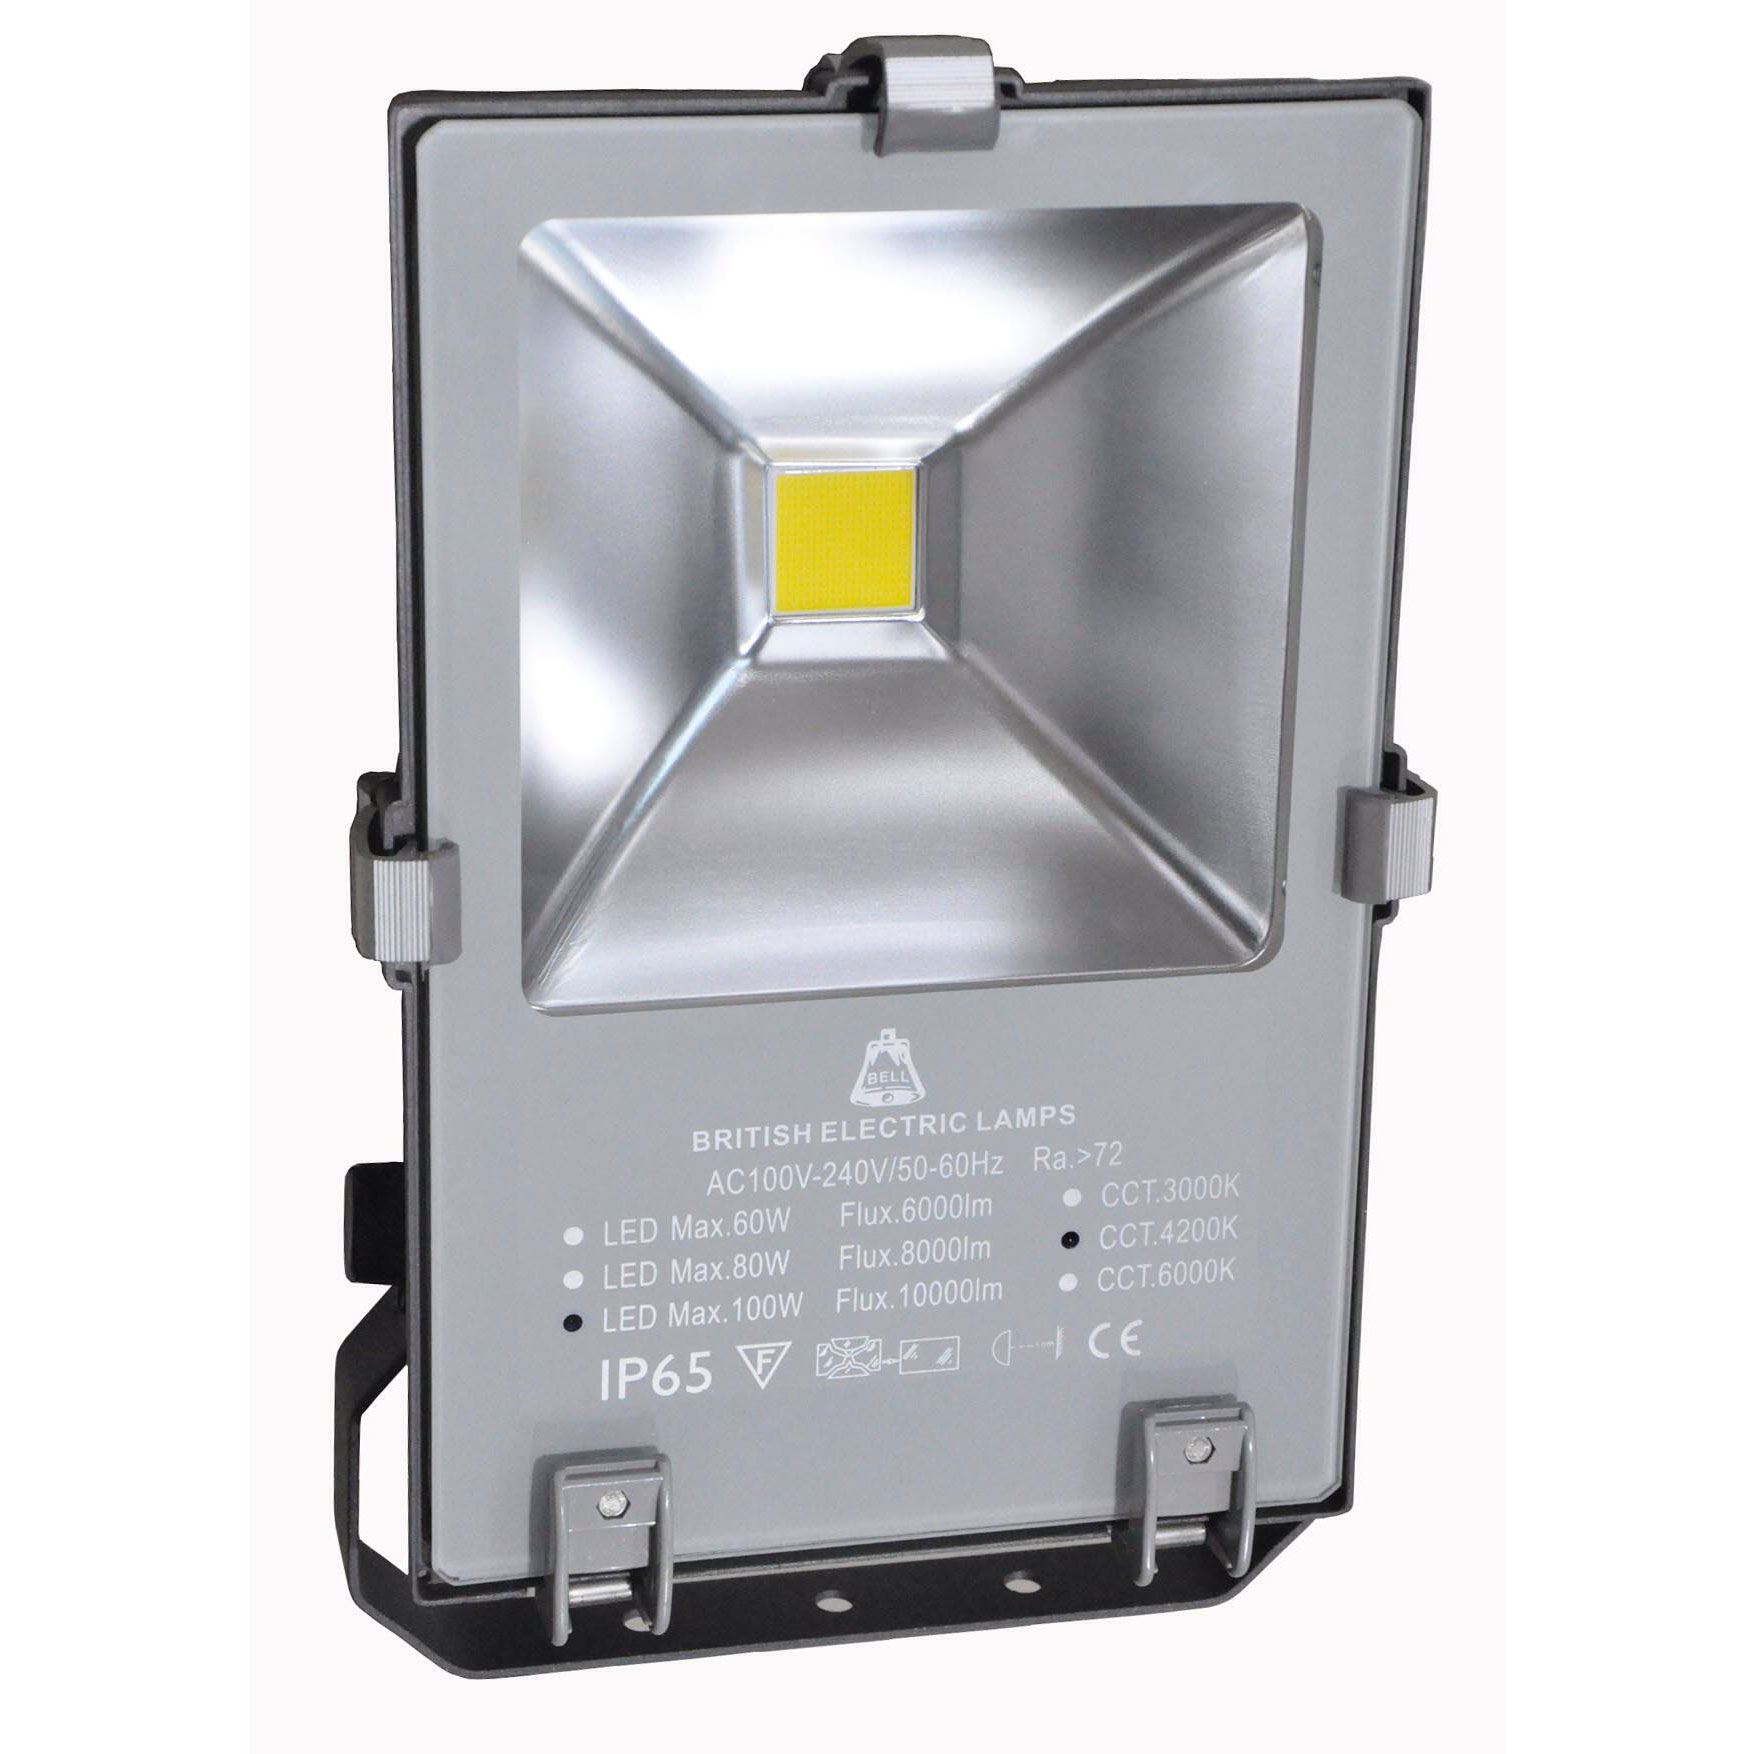 BL LED FLOODLIGHT 100W=250W 50K PHOTOCELL SKYLINE PRO DAWN TO DUSK